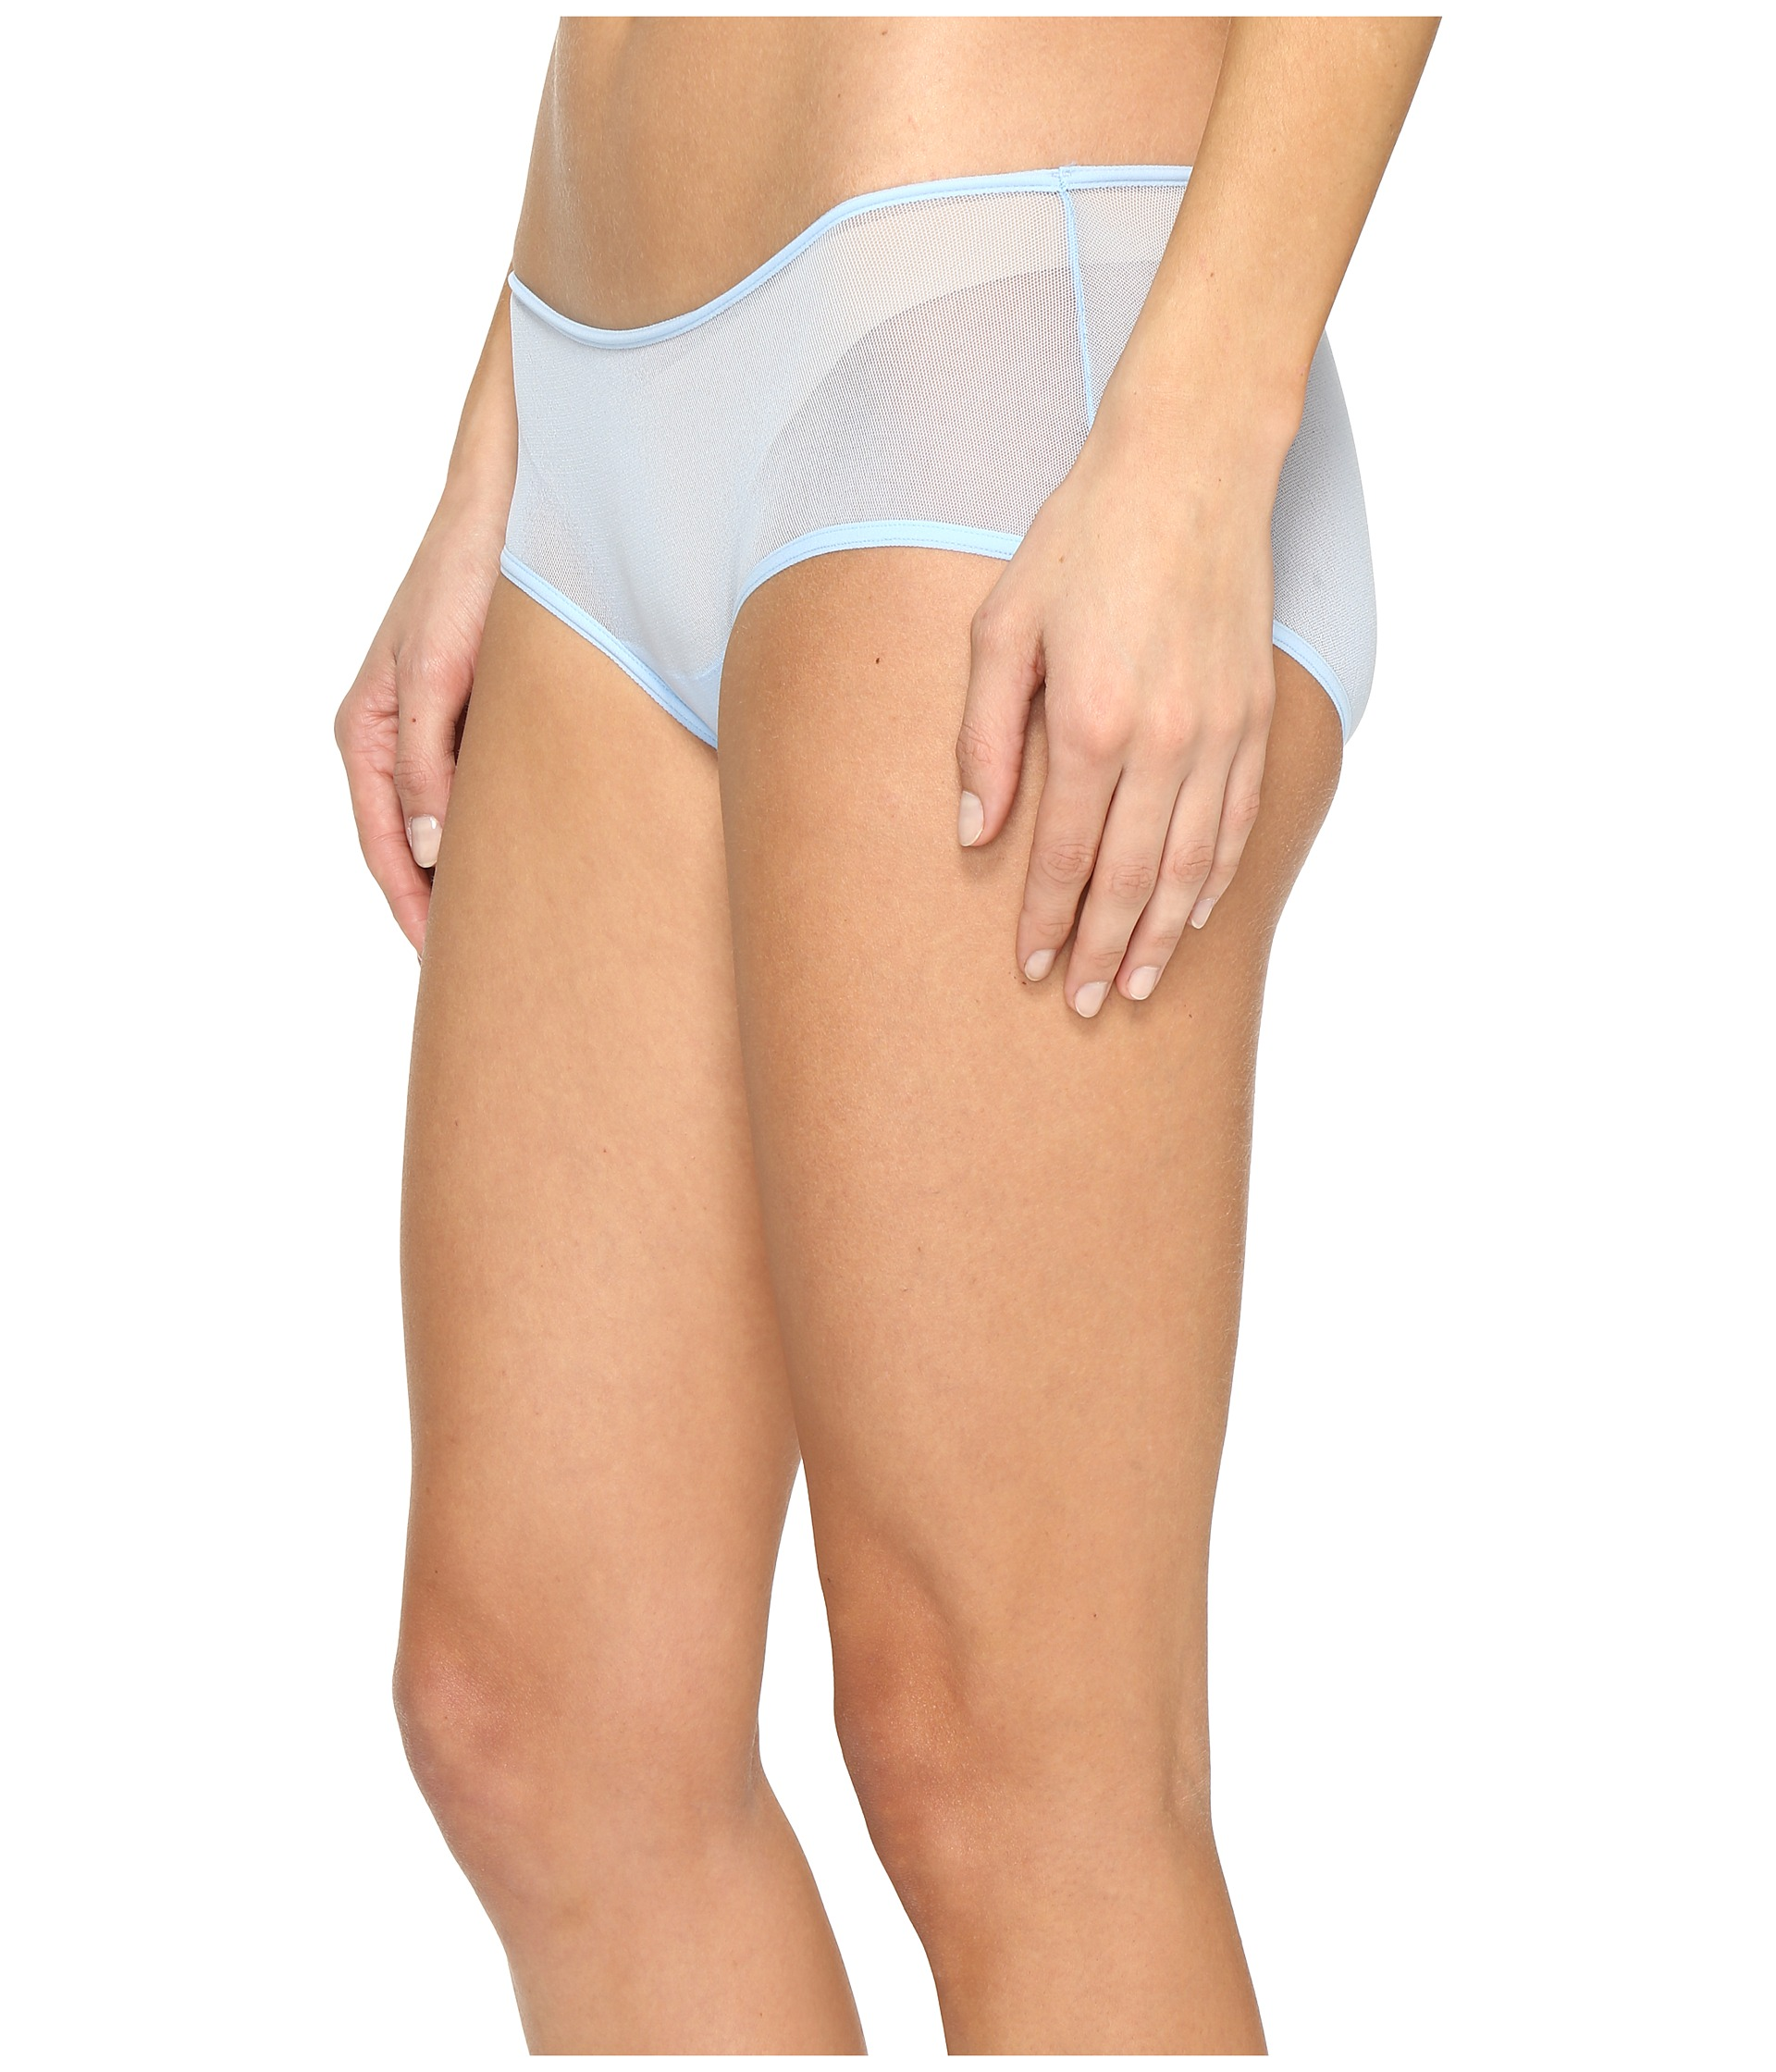 cosabella soir new lowrider boyleg sorrento blue   zappos   free shipping both ways